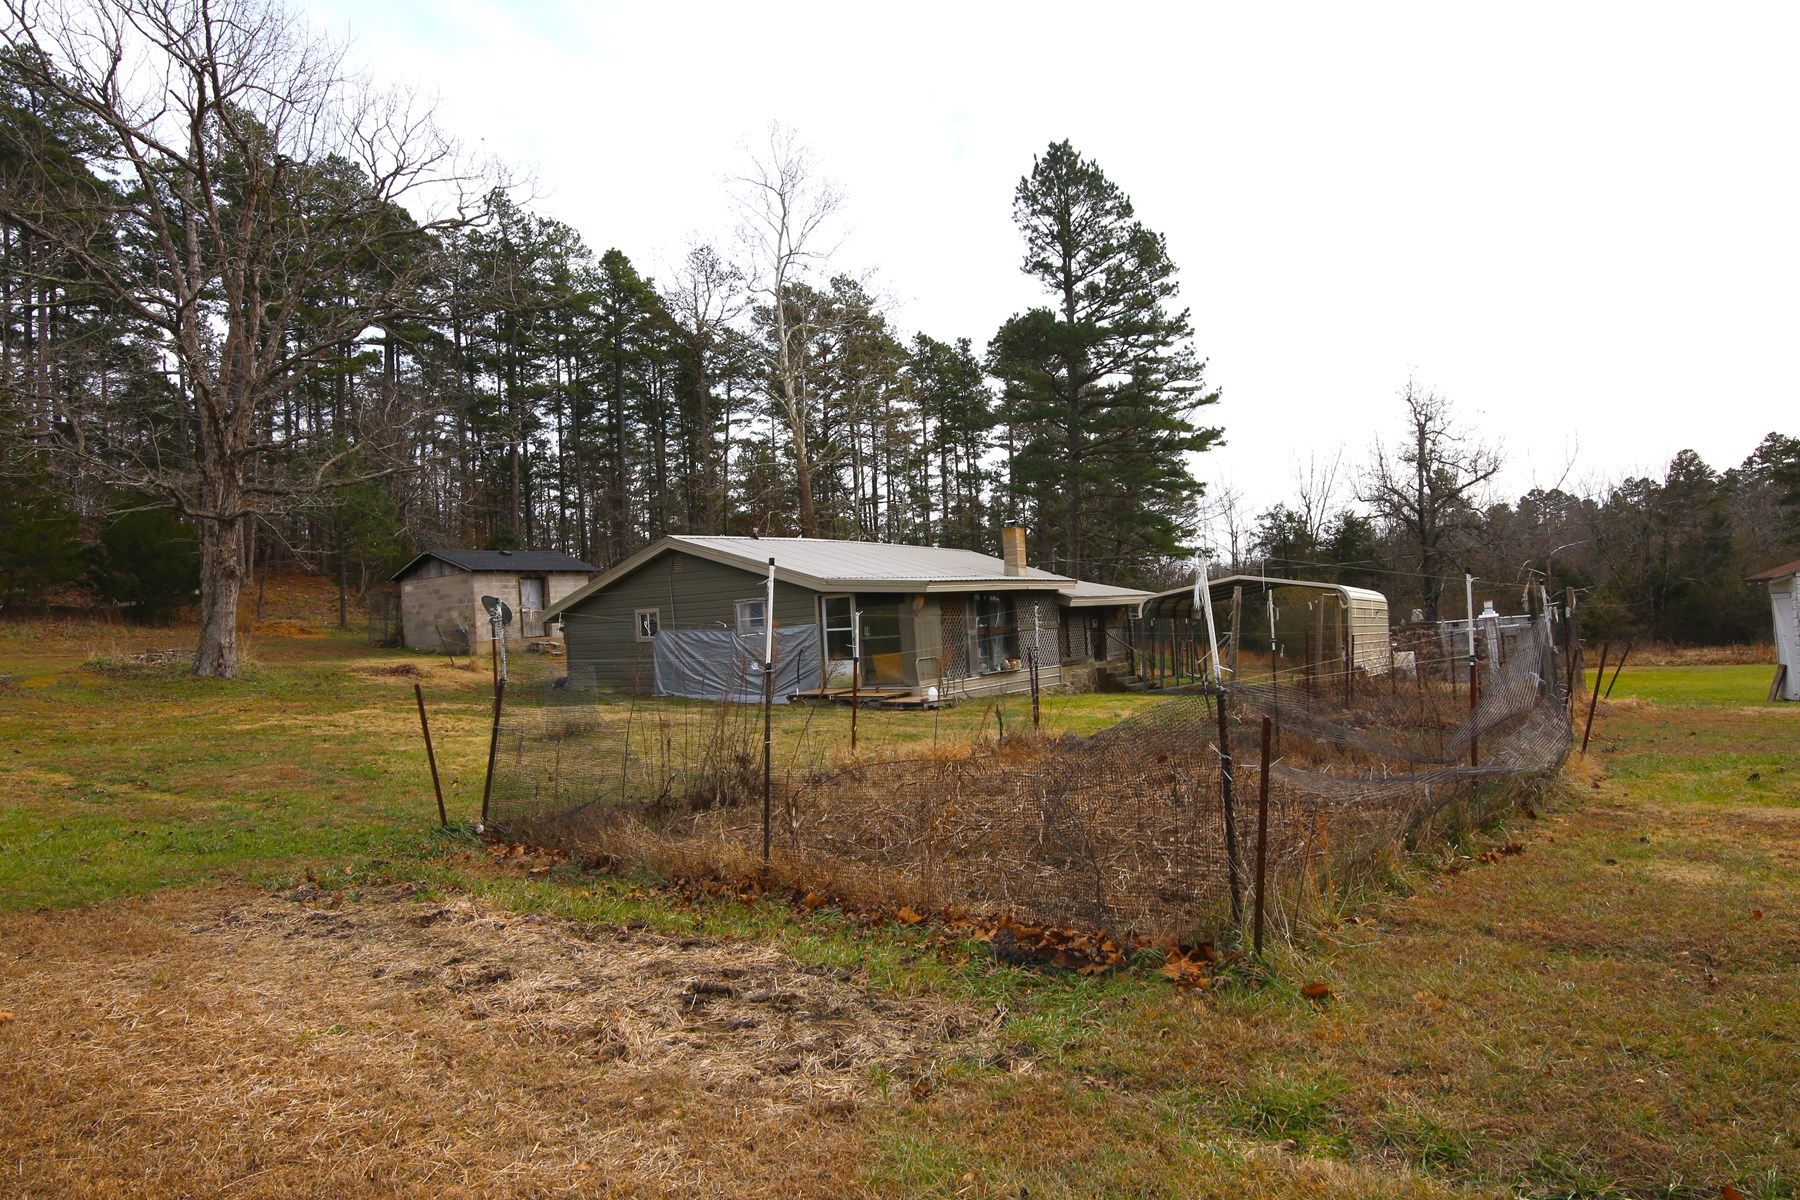 Secluded Home / Cabin On Small Acreage For Sale in North AR